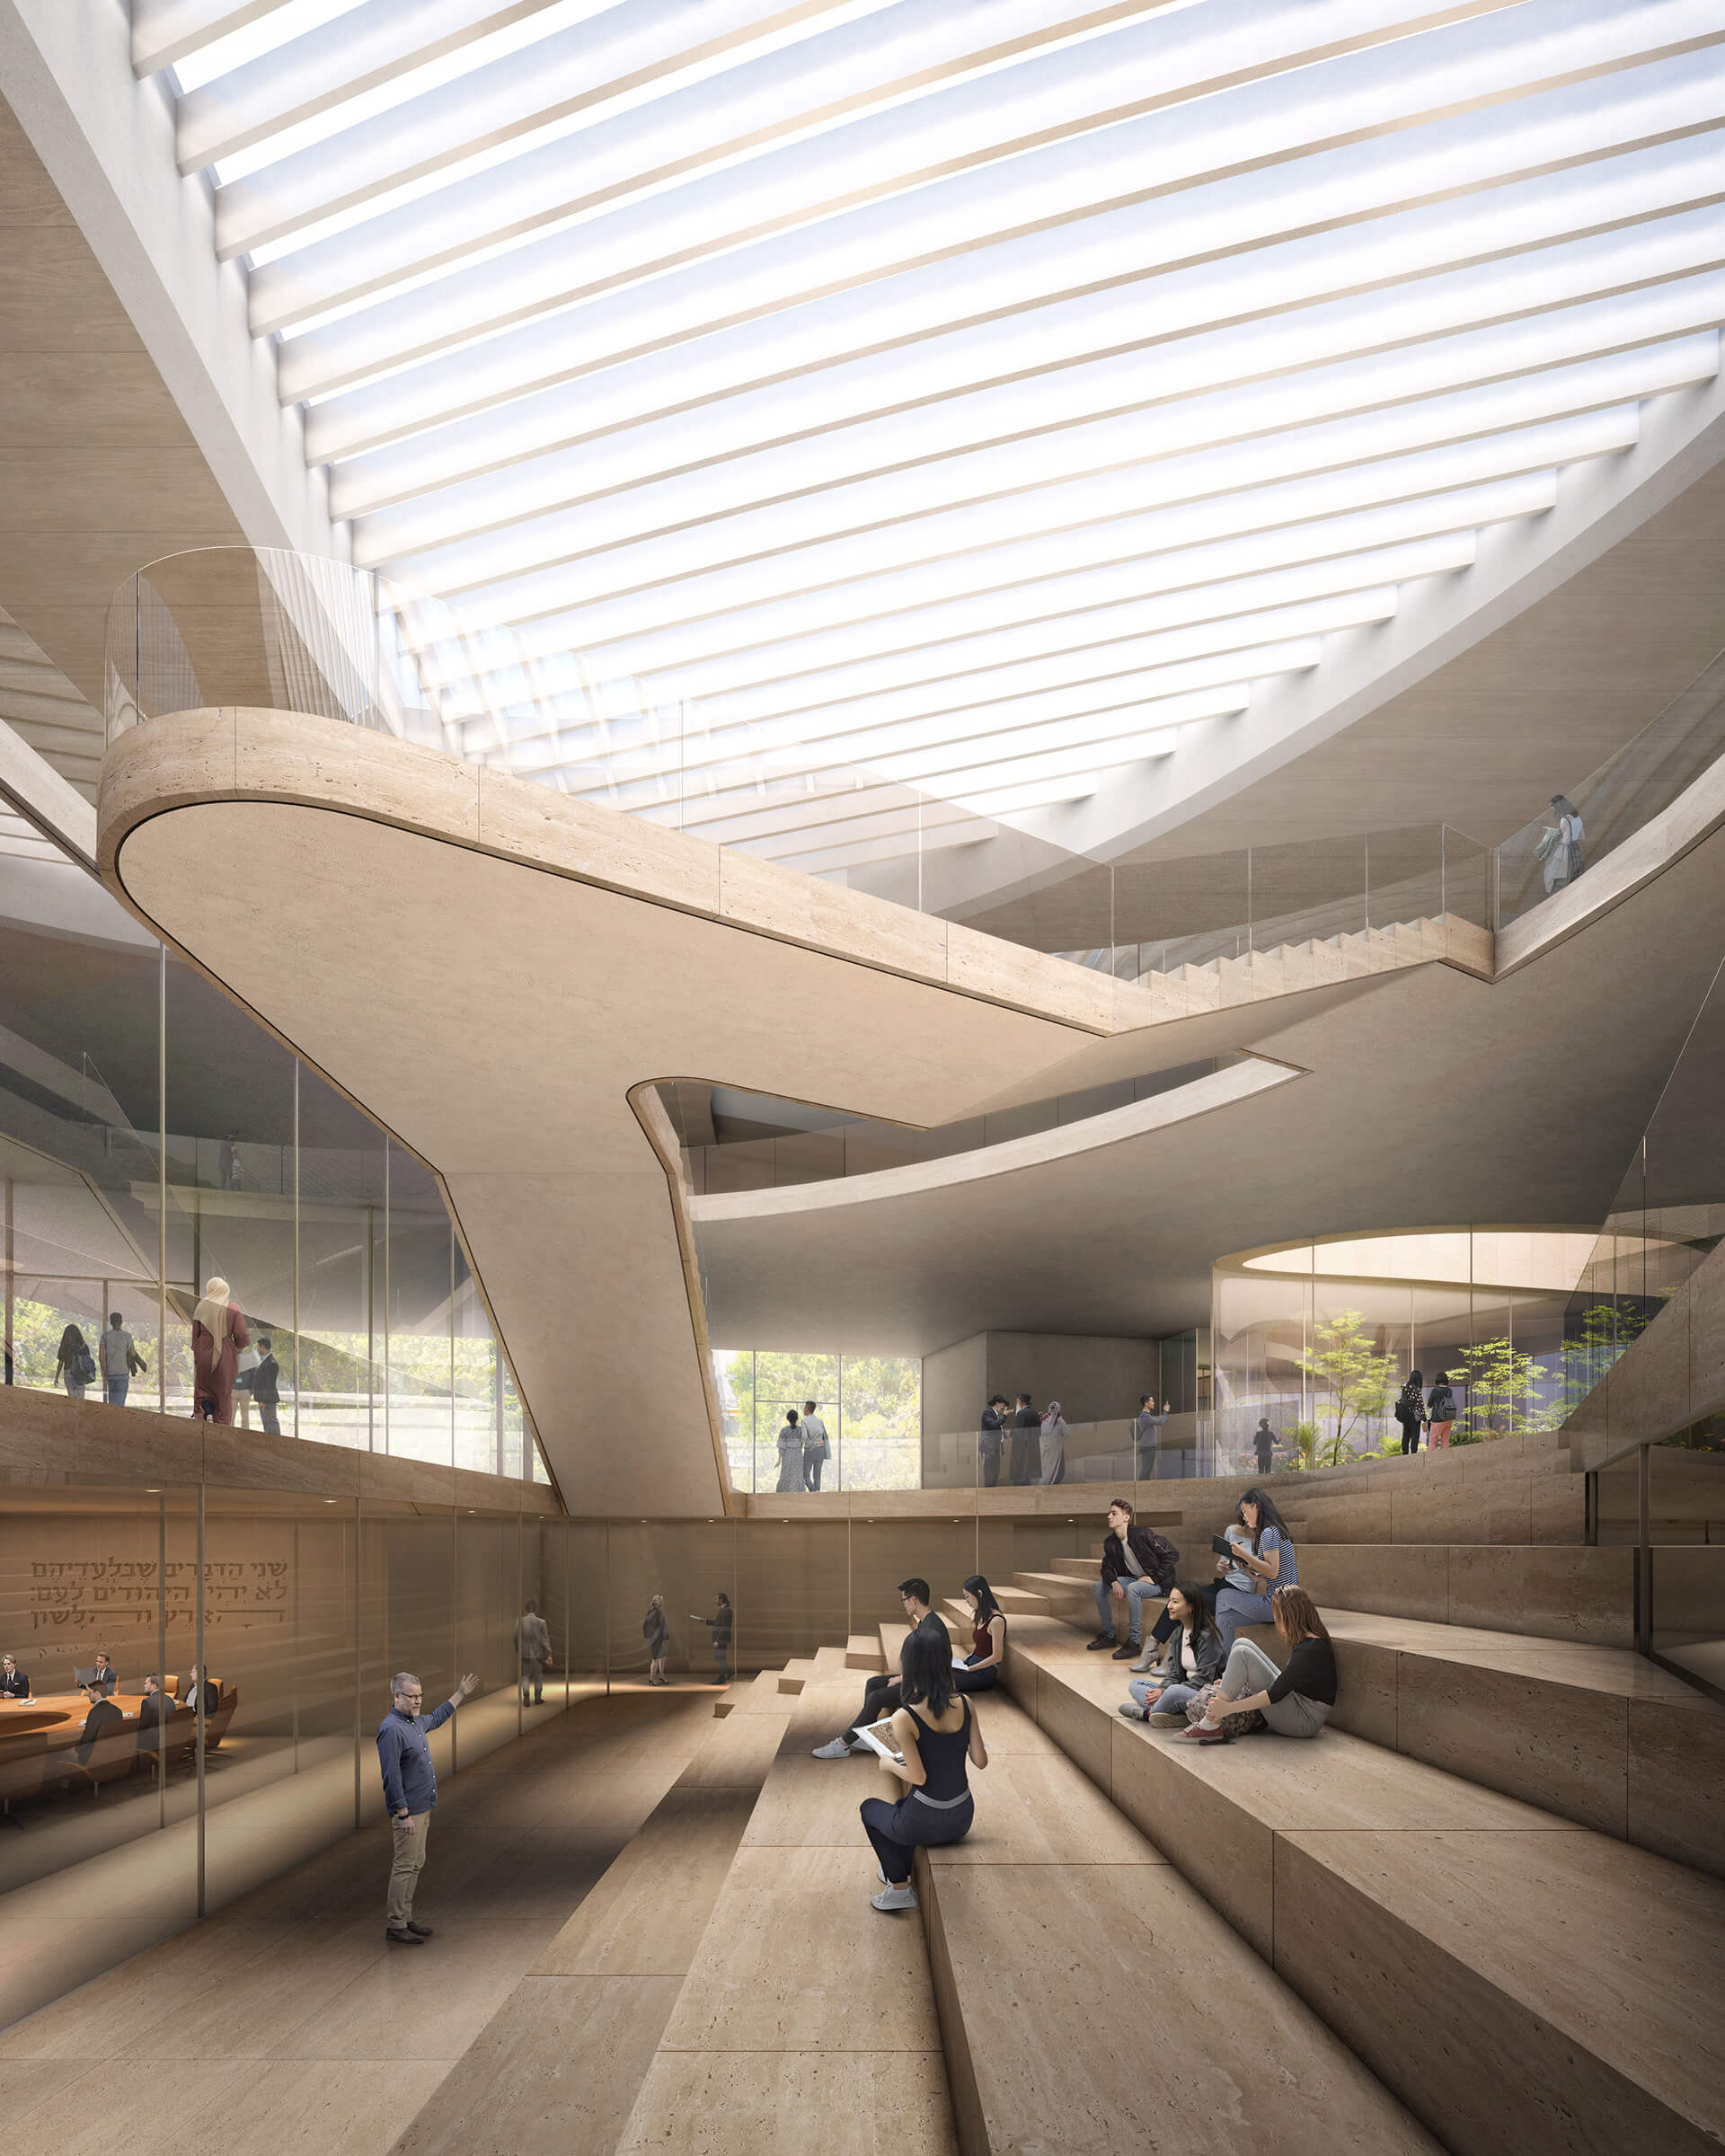 The spaces within the building are wrapped around a 56-foot high central atrium | Academy of the Hebrew Language HQ | ODA | STIRworld